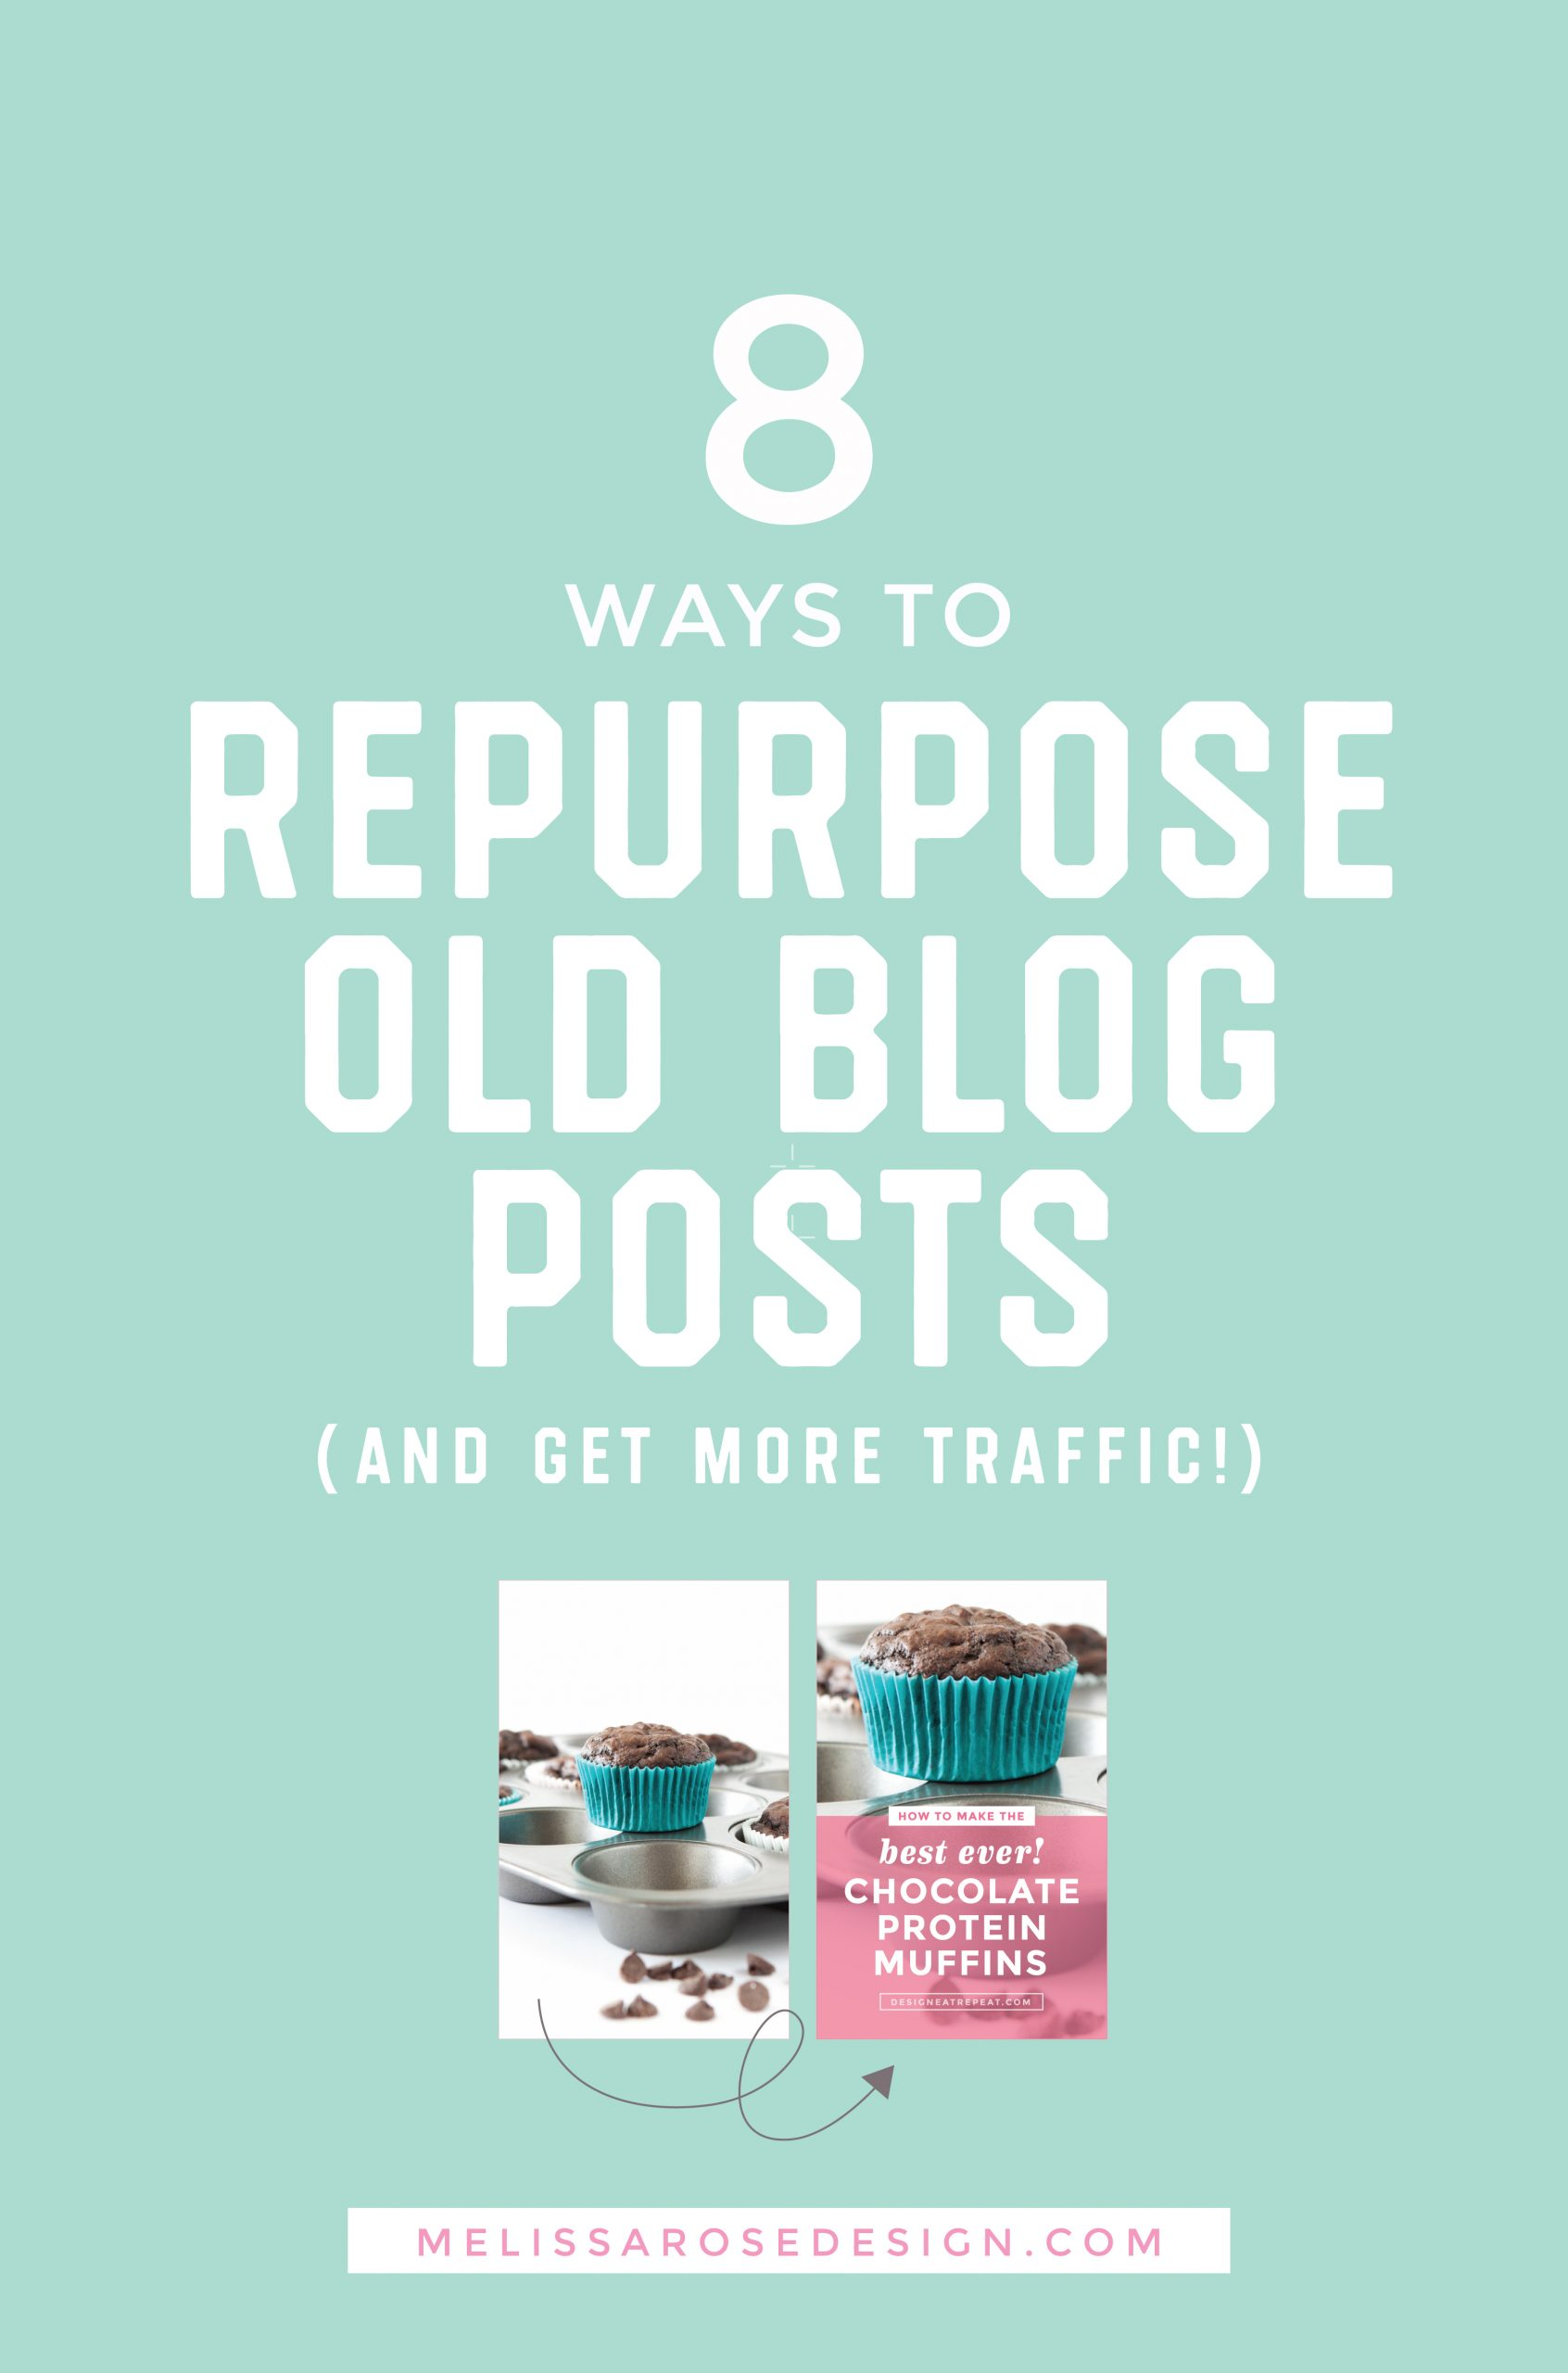 Learn 8 ways you can repurpose old blog posts to drive traffic to your site and ease the pressure of having to constantly create new recipes & projects! #foodblogging #blogging #blogging tips | melissarosedesign.com